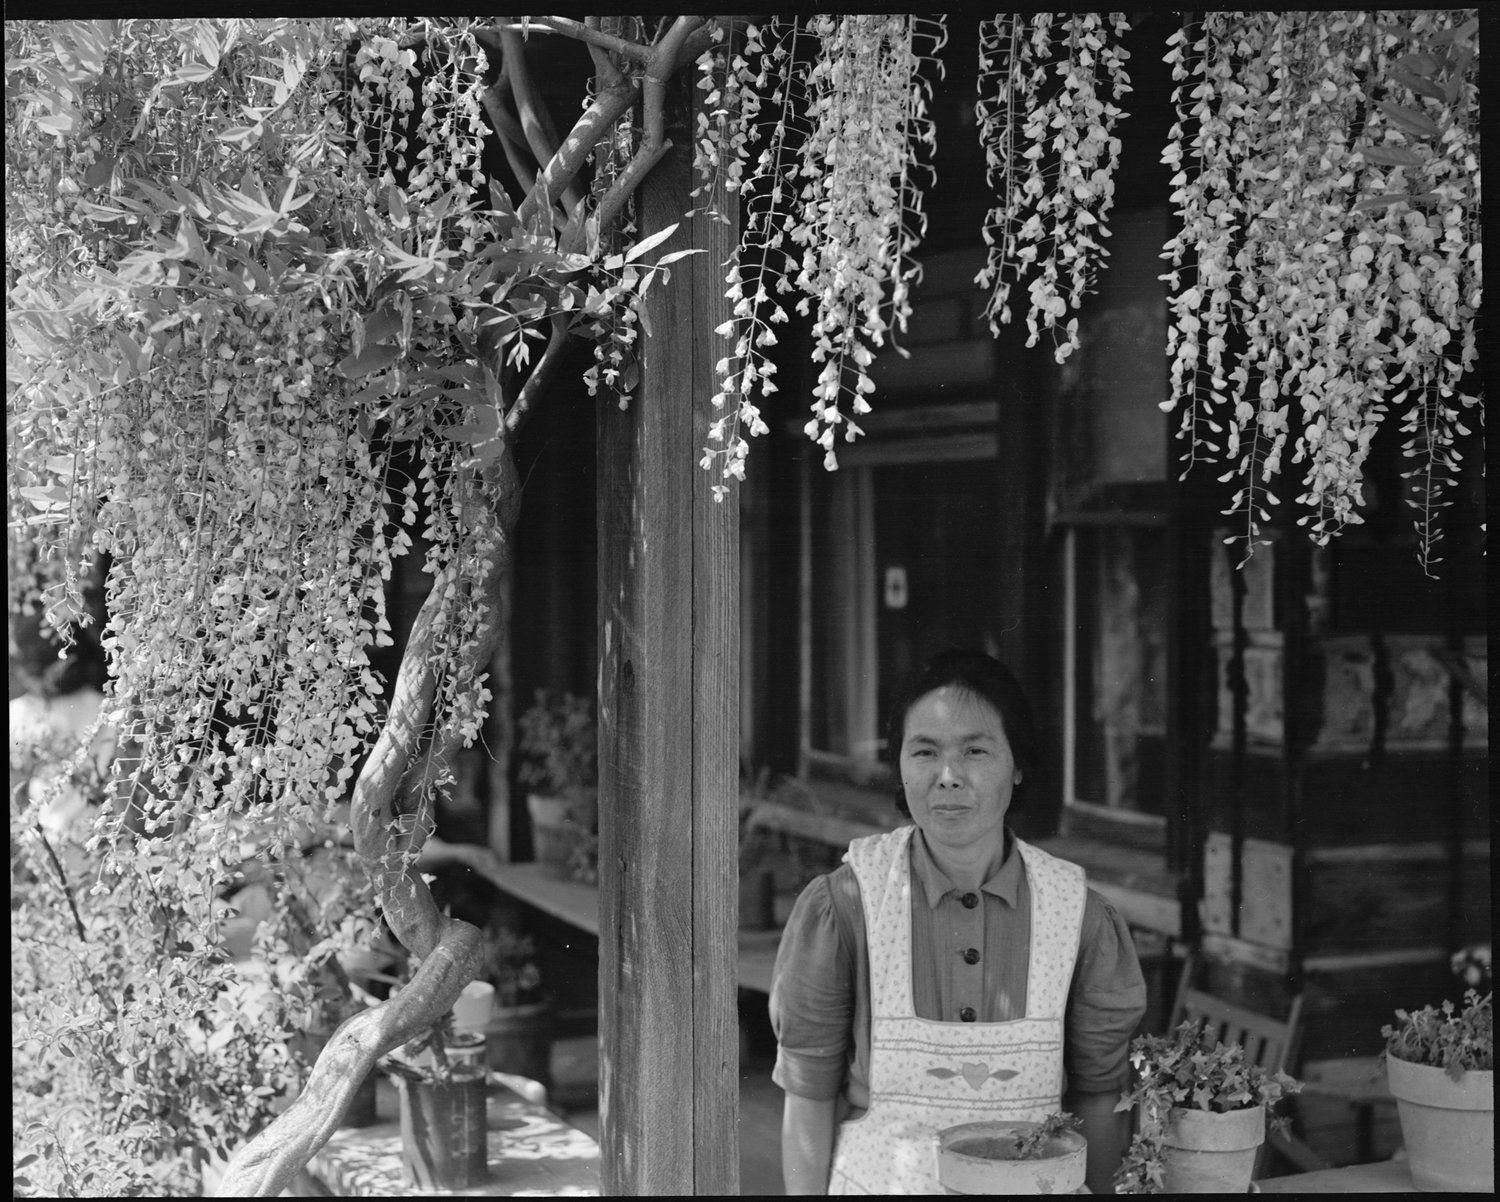 Mountain View, California. Mother of six children born in this country. Before evacuation, the family operated a 20-acre farm in Santa Clara County, raising berries, broccoli, peas, and garlic. Evacuees of Japanese ancestry will be housed in War Relocation Authority centers for the duration where they will be given opprtunities to continue farming and other callings.